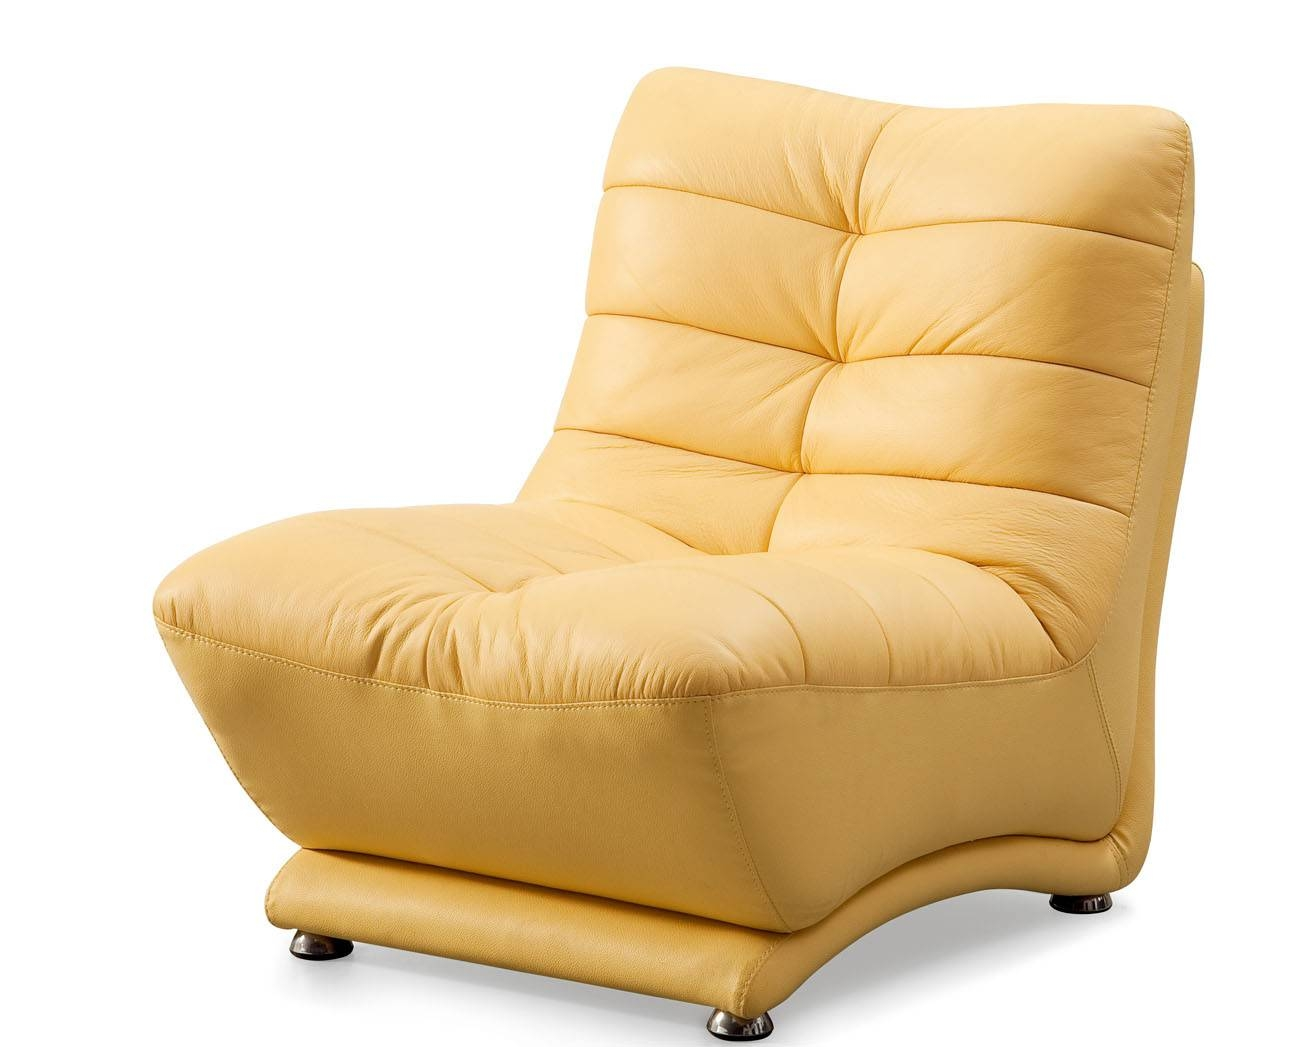 Furniture Home : Sofa Chairs Furniture Designs (30) Modern Elegant with regard to Sofa Chairs (Image 15 of 30)